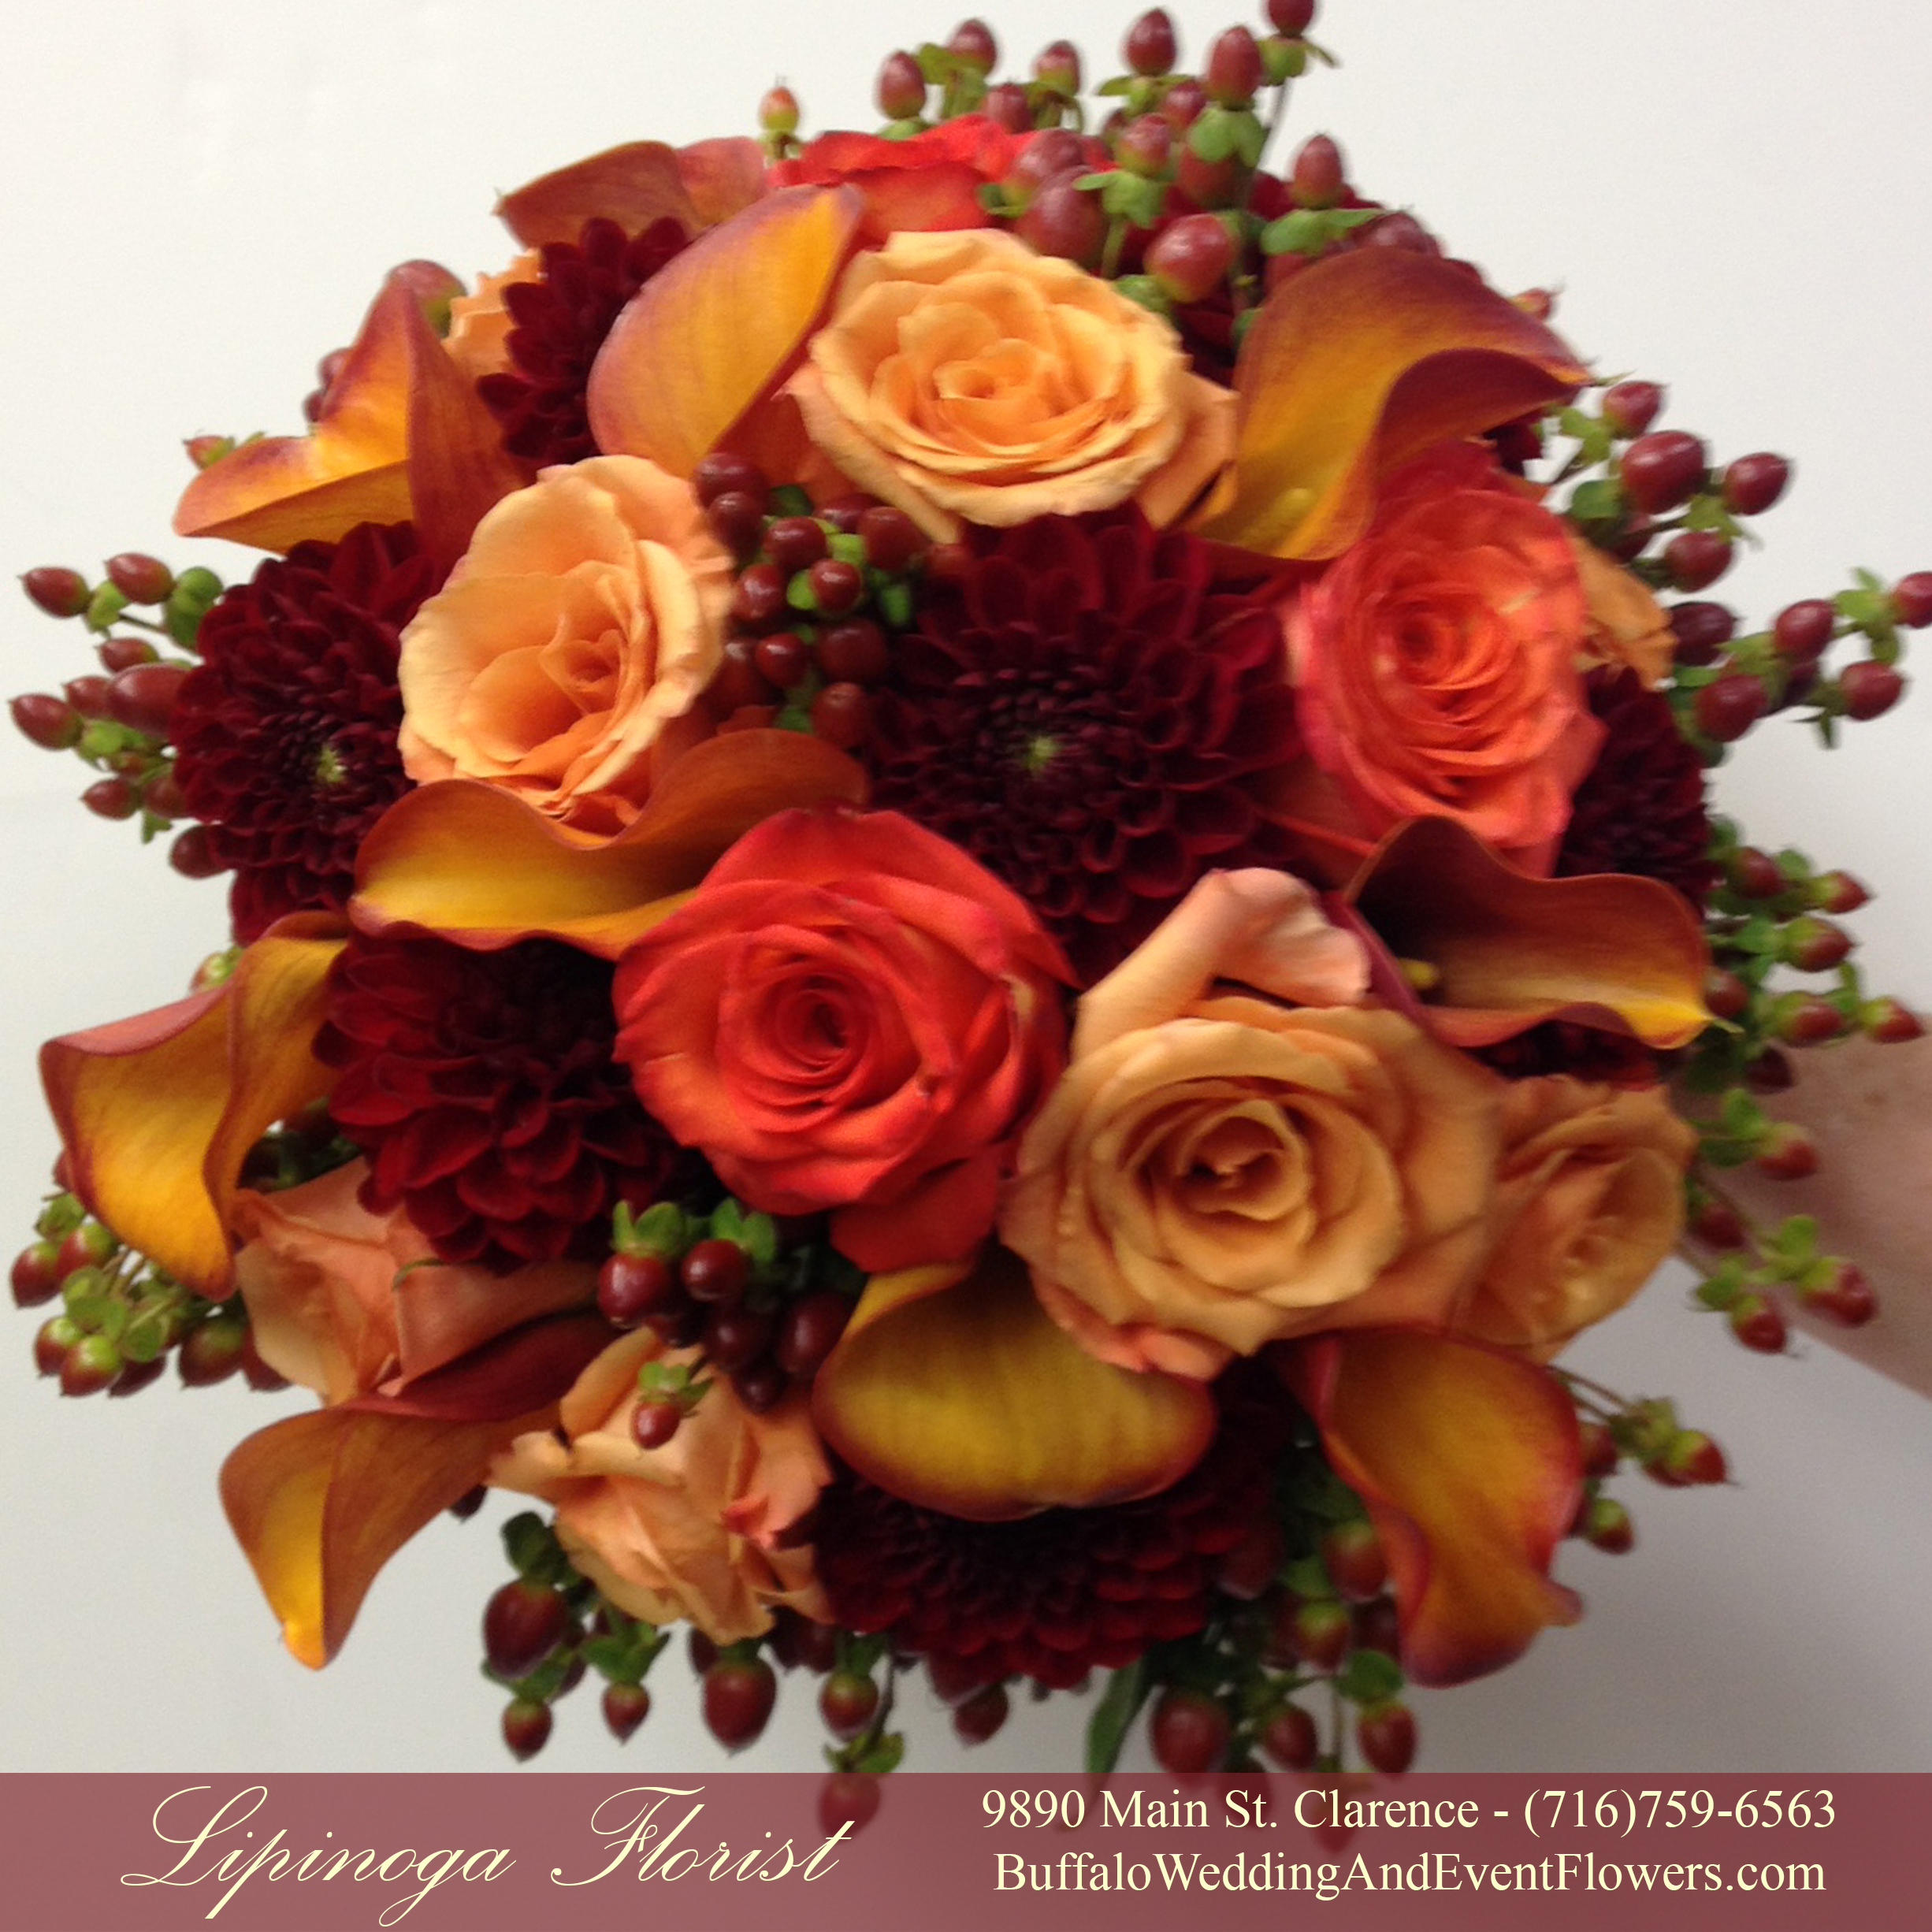 Buffalo Wedding & Event Flowers by Lipinoga Florist